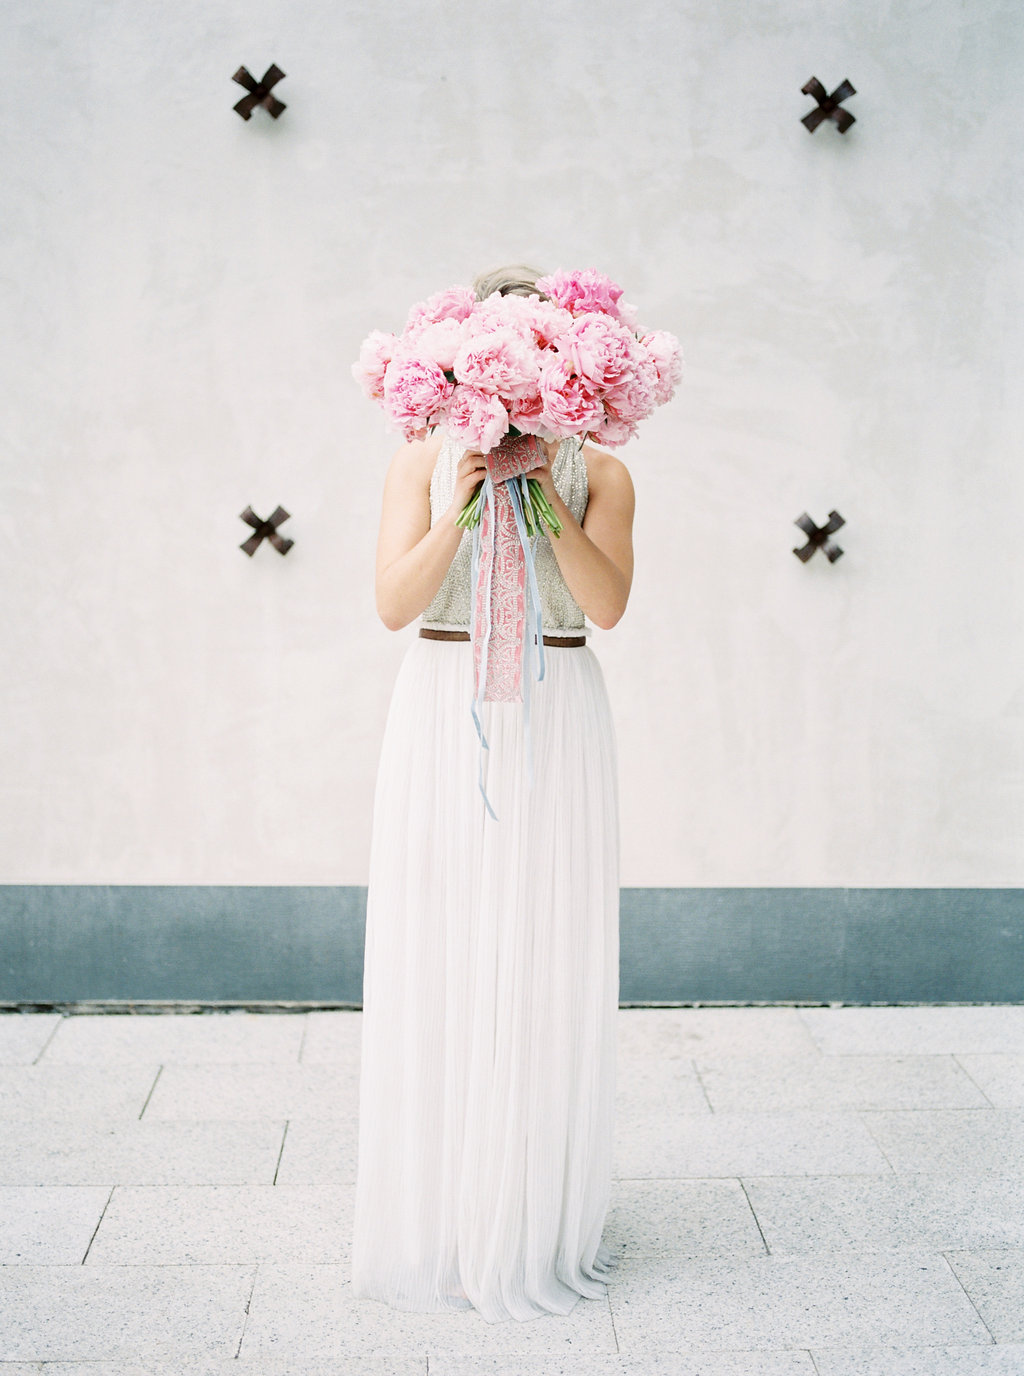 Sweet Peony Bridal Inspiration - photo by Awake Photography http://ruffledblog.com/sweet-peony-bridal-inspiration